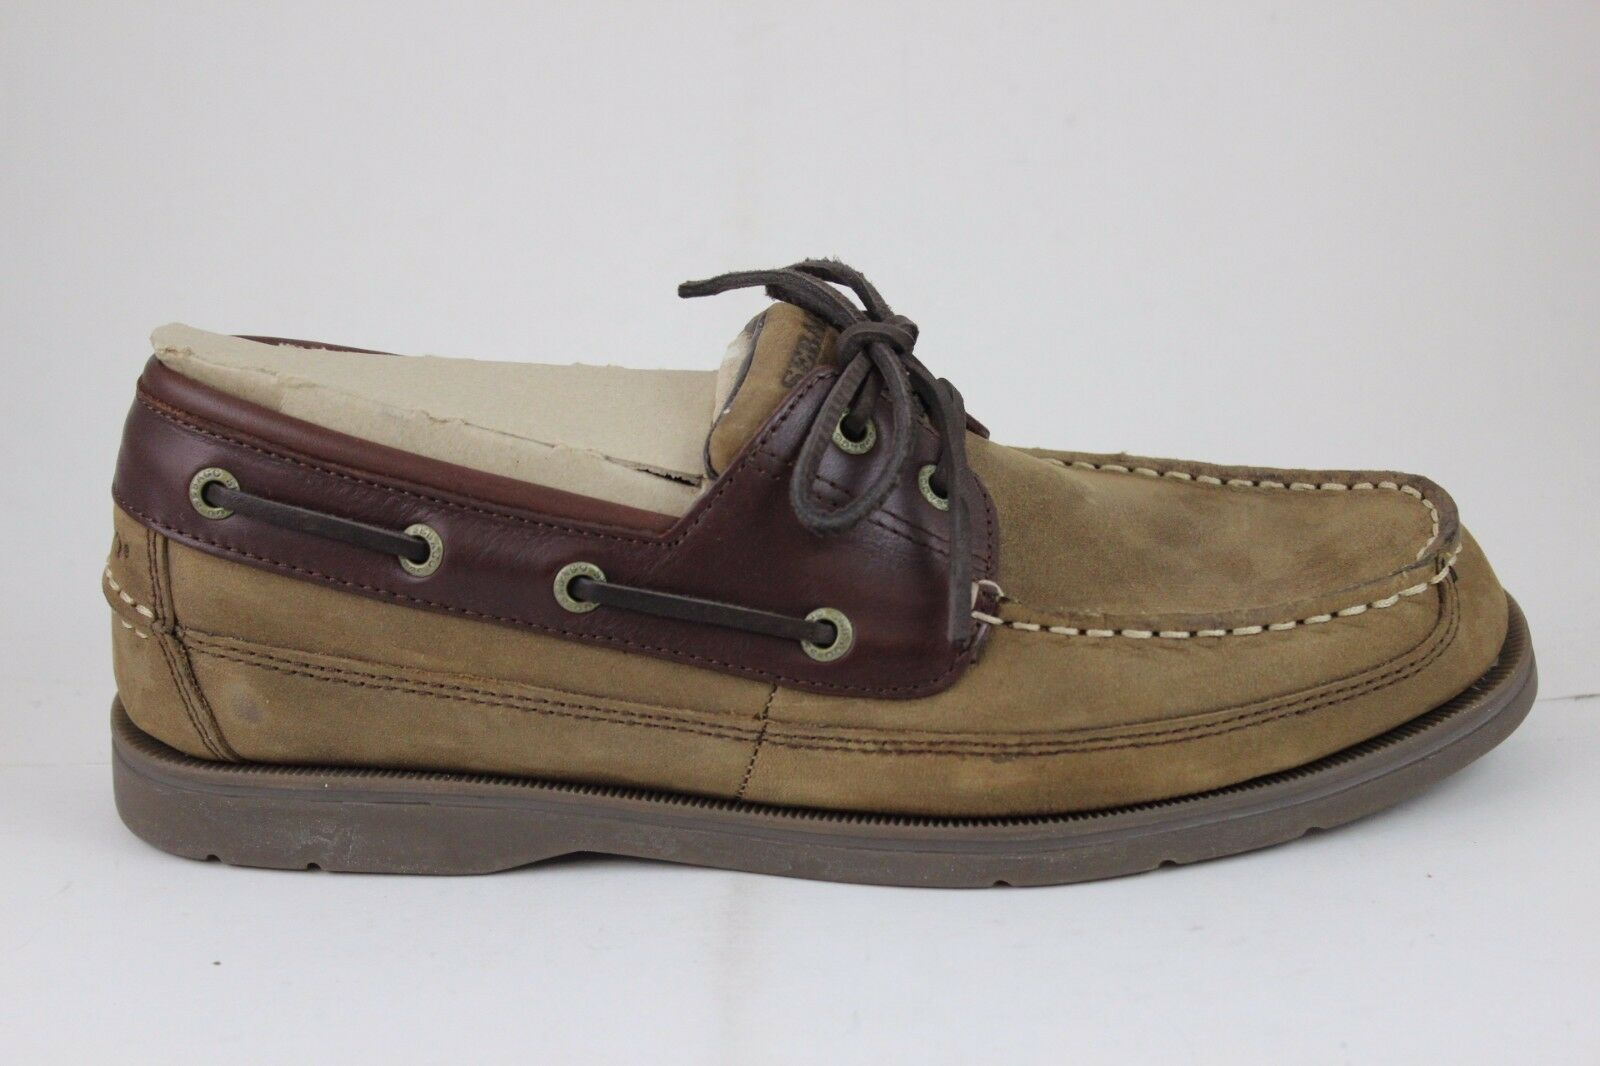 Sebago Men's Grinder B110608 Chocolate Nubuck Brown New in Box